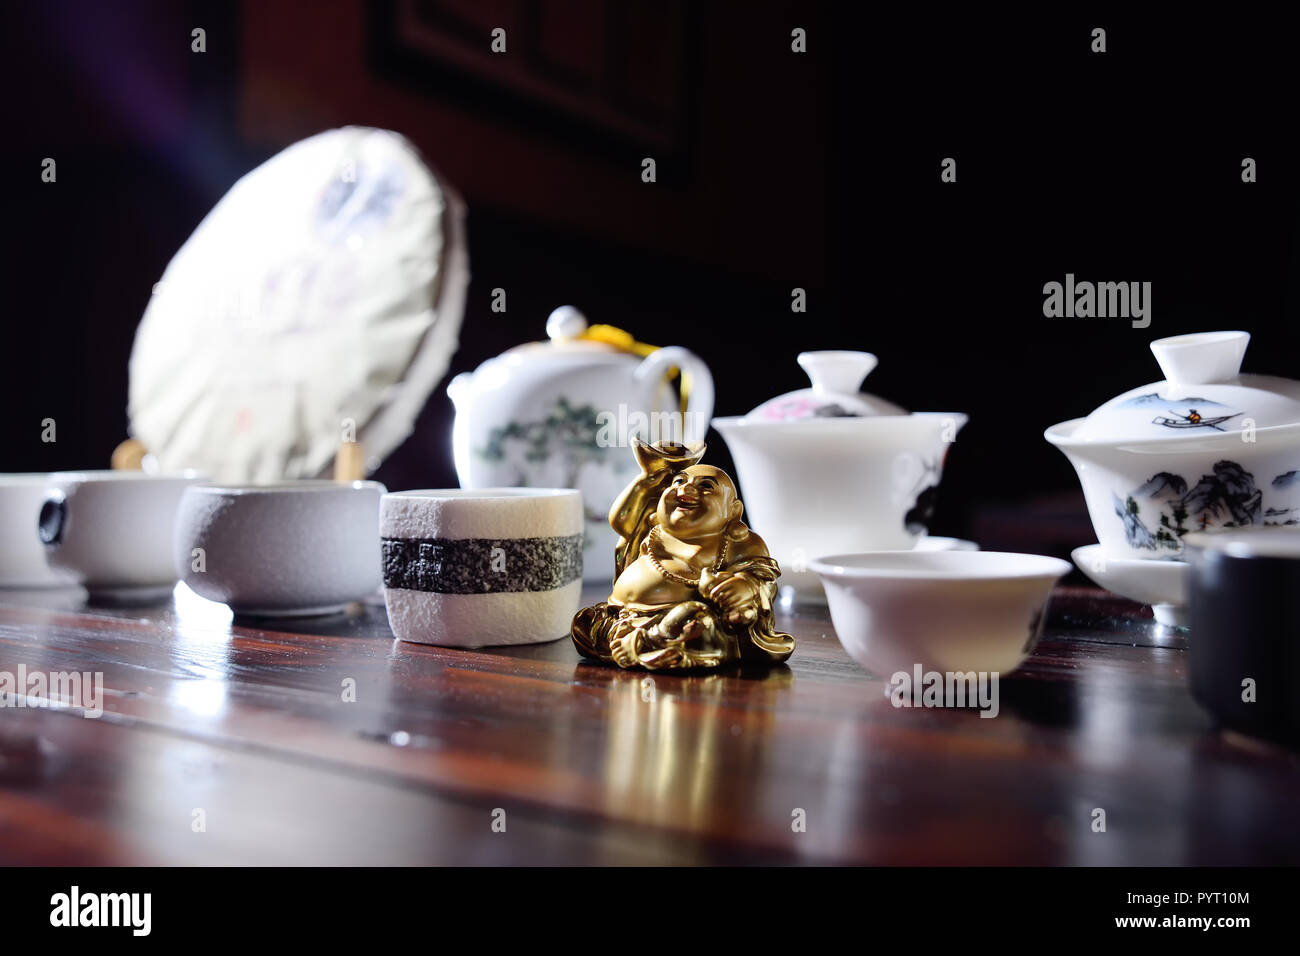 Appliances for tea ceremony and figure Hotei - Stock Image